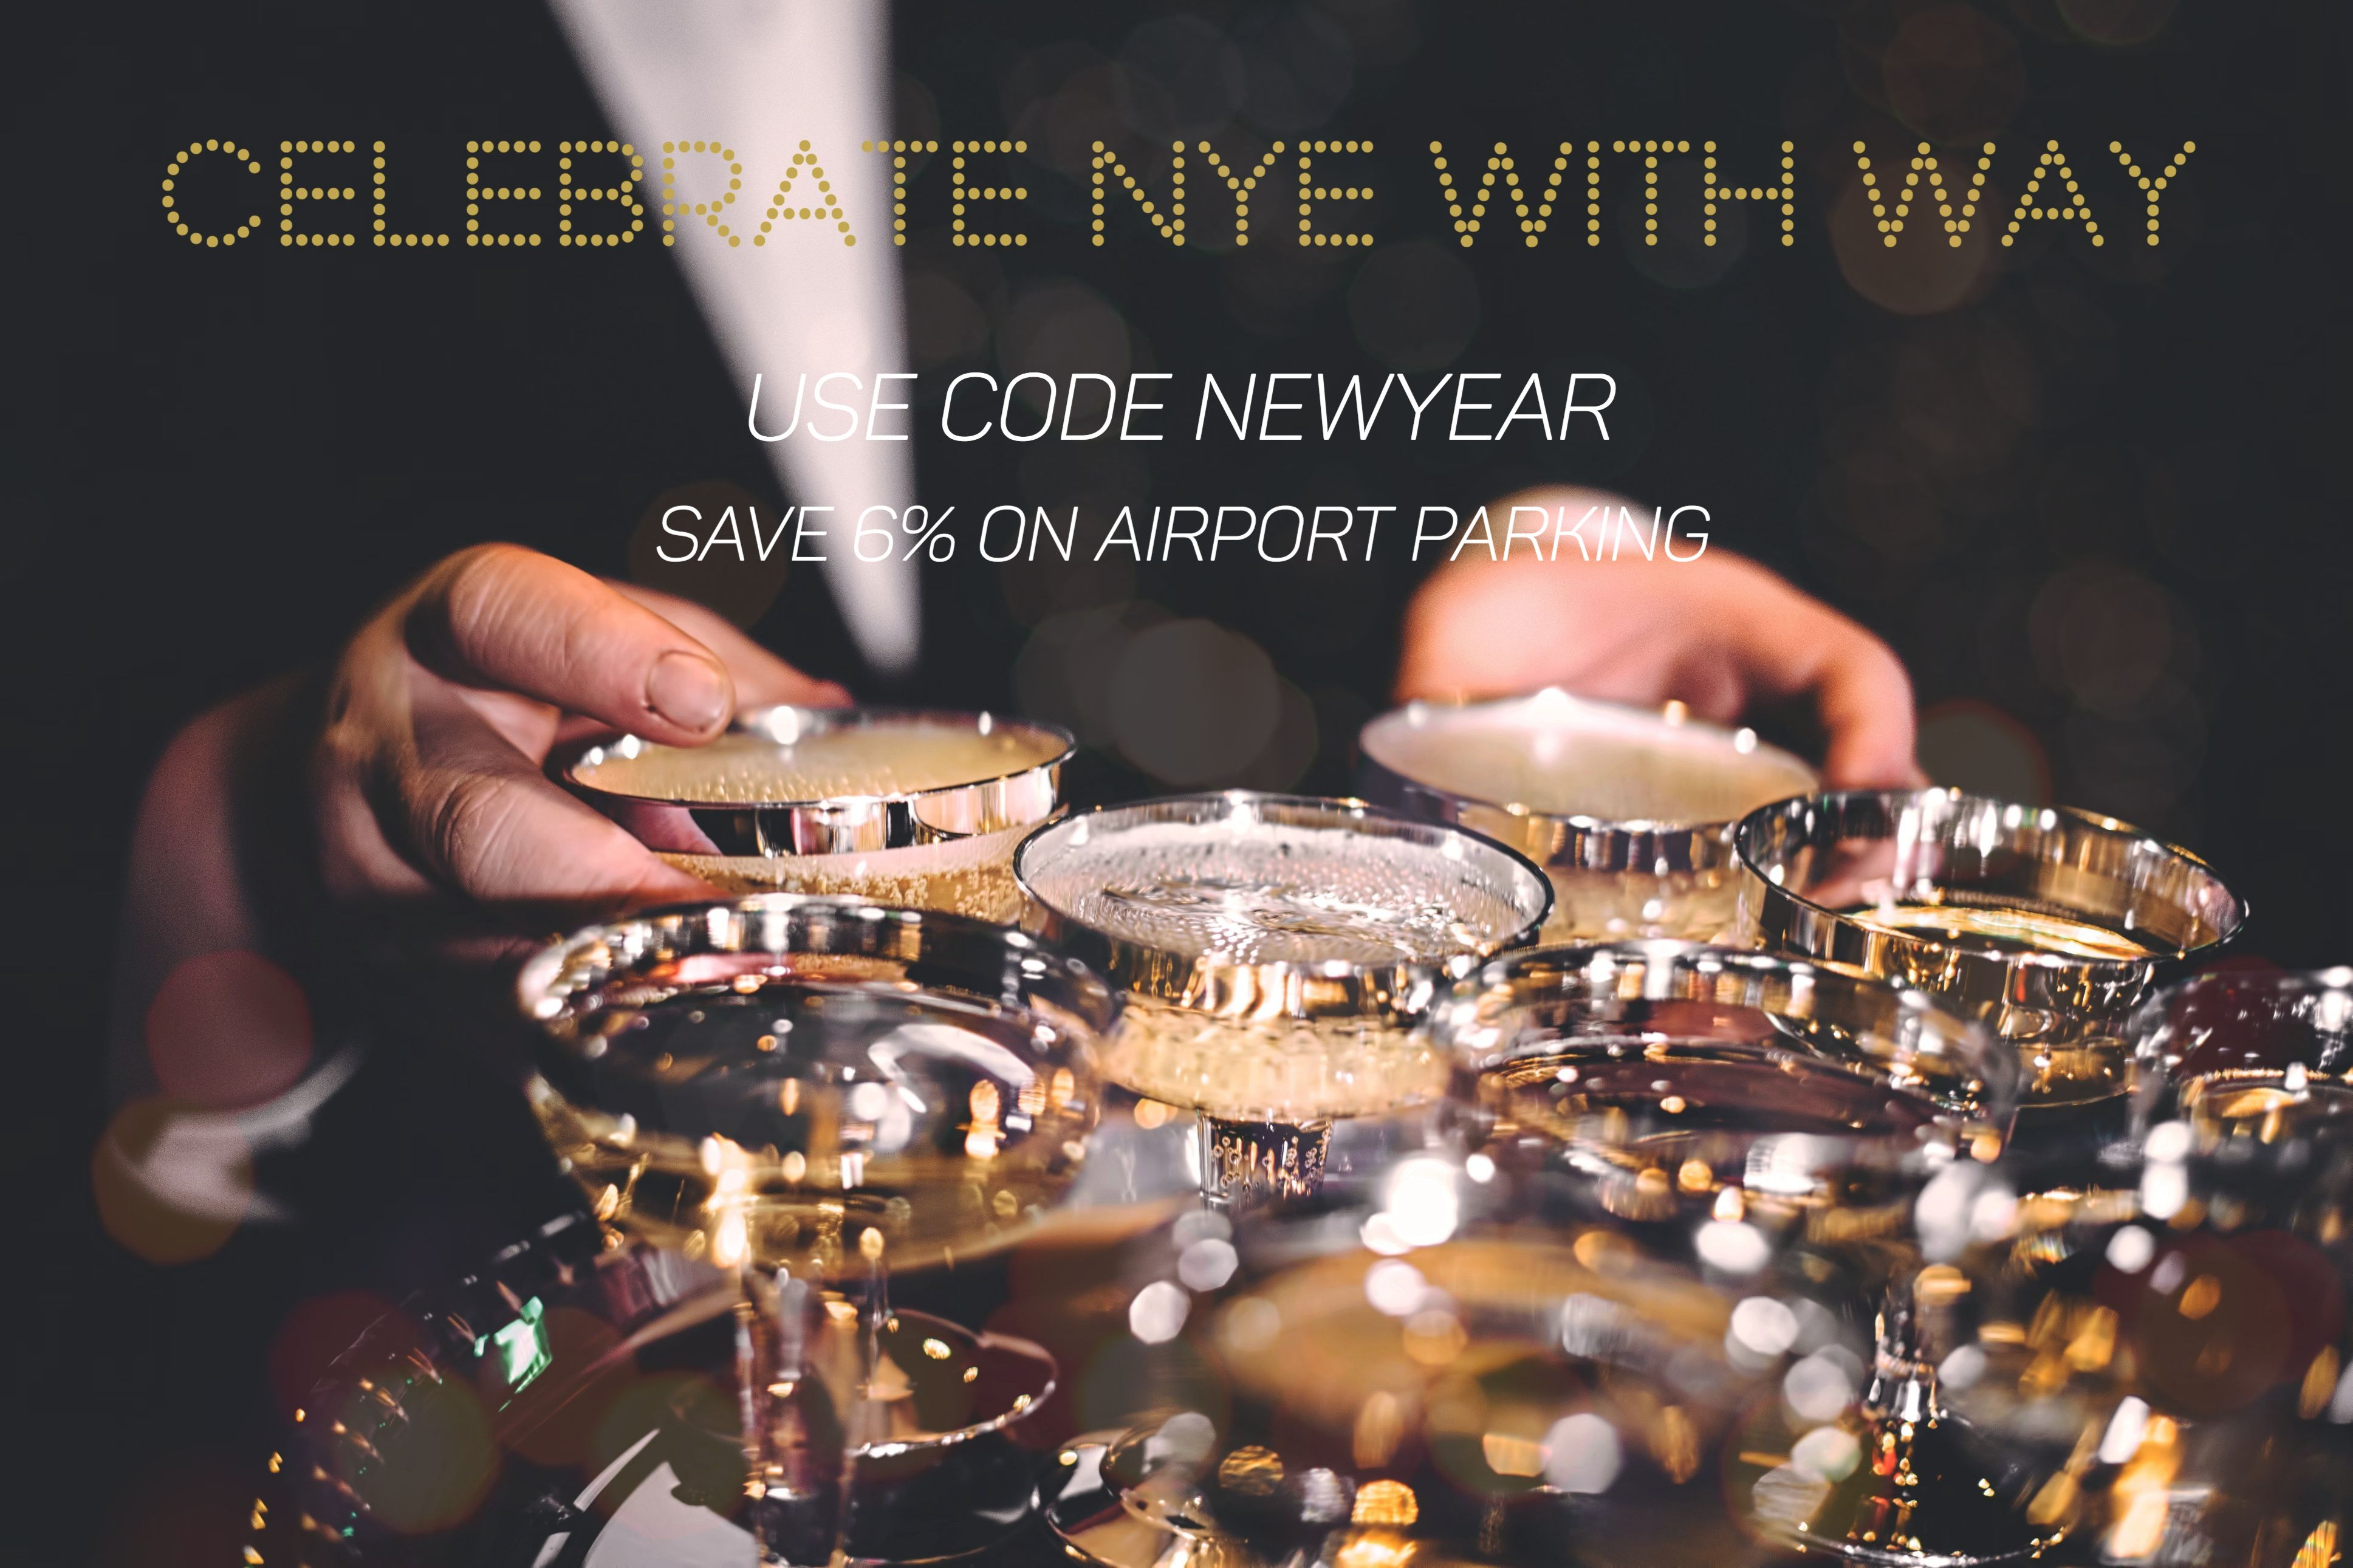 Celebrate with WAY. Use code NEWYEAR for 6% off all airport parking